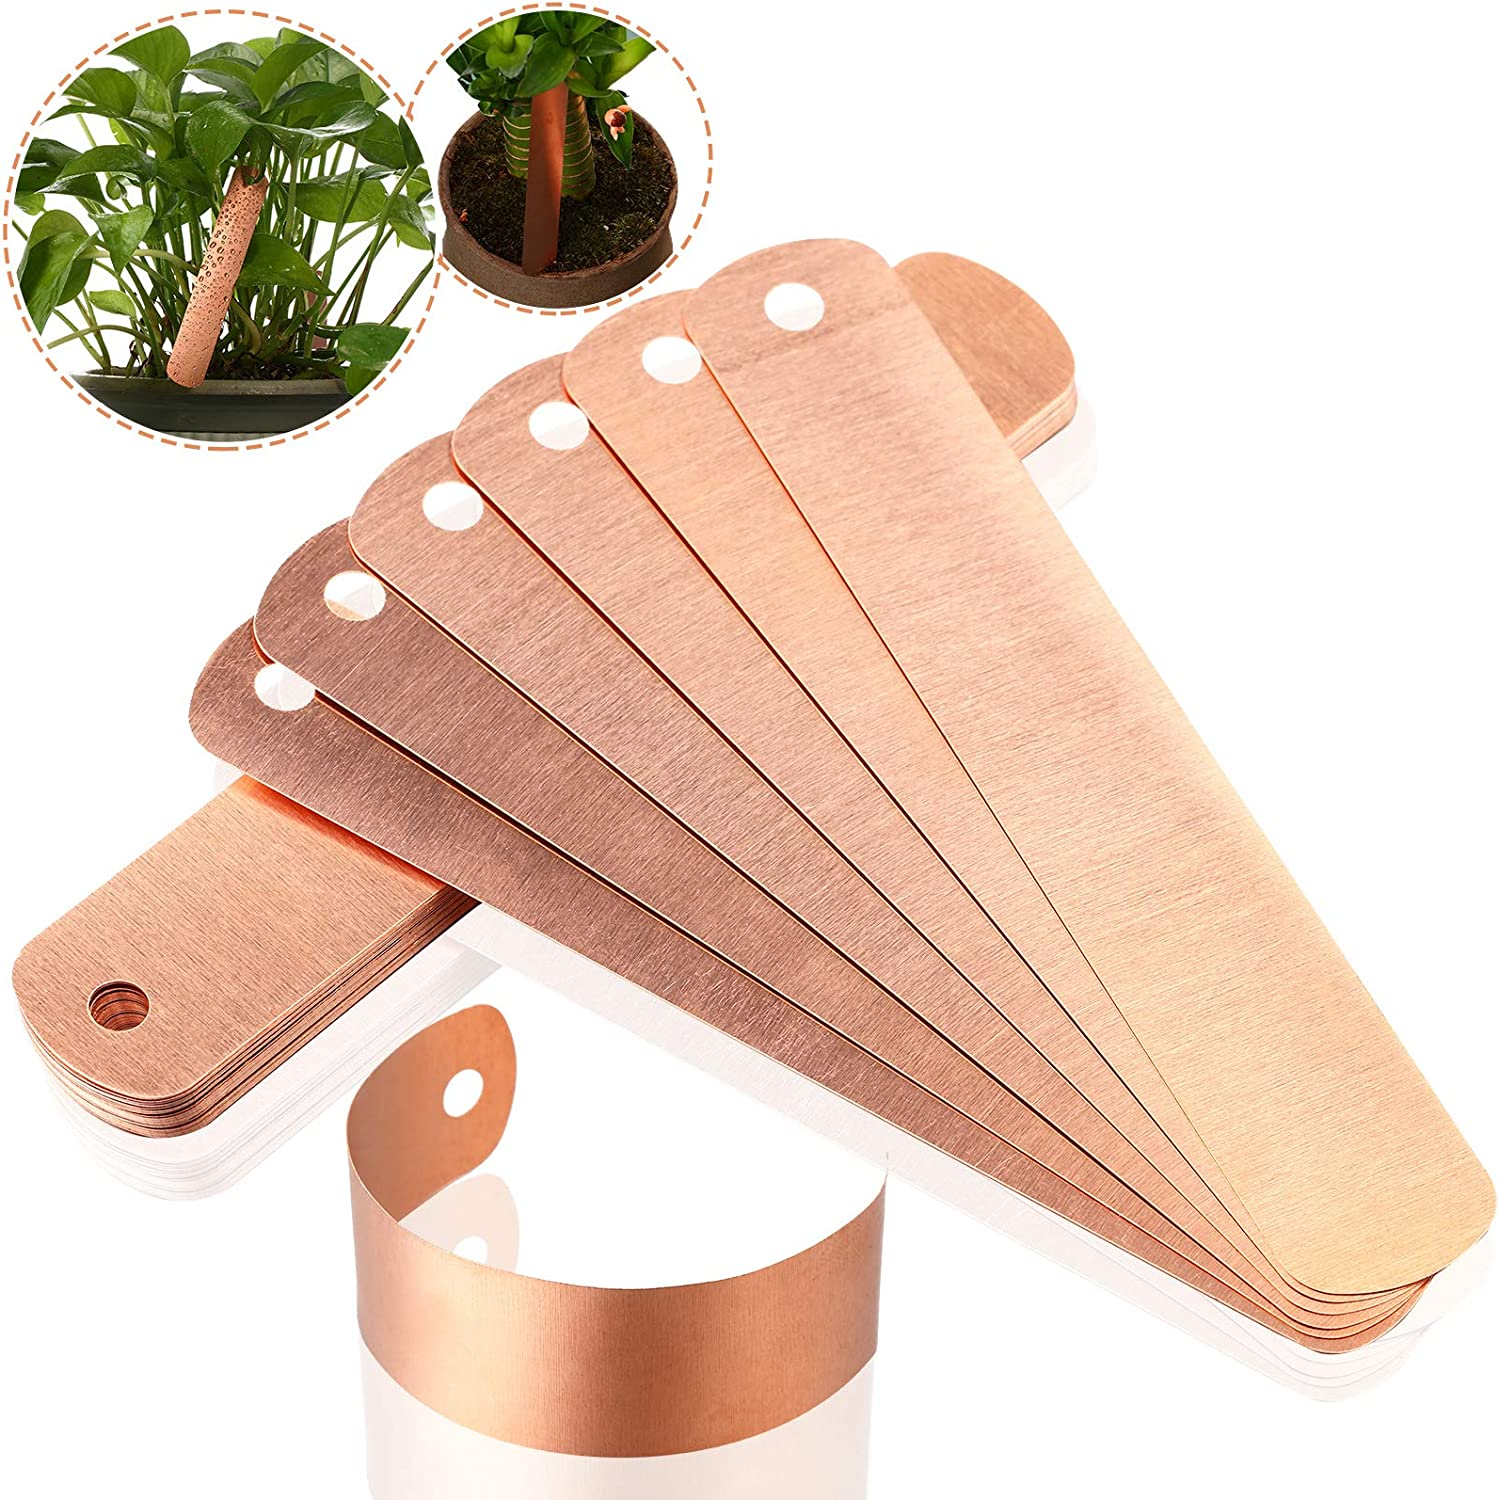 Hotop 30 Pieces 4.5 Inch Copper Plant Tags Long Copper Garden Labels Reusable Plant Tree Labels with 30 Pieces Copper Ties for Gardening Plants